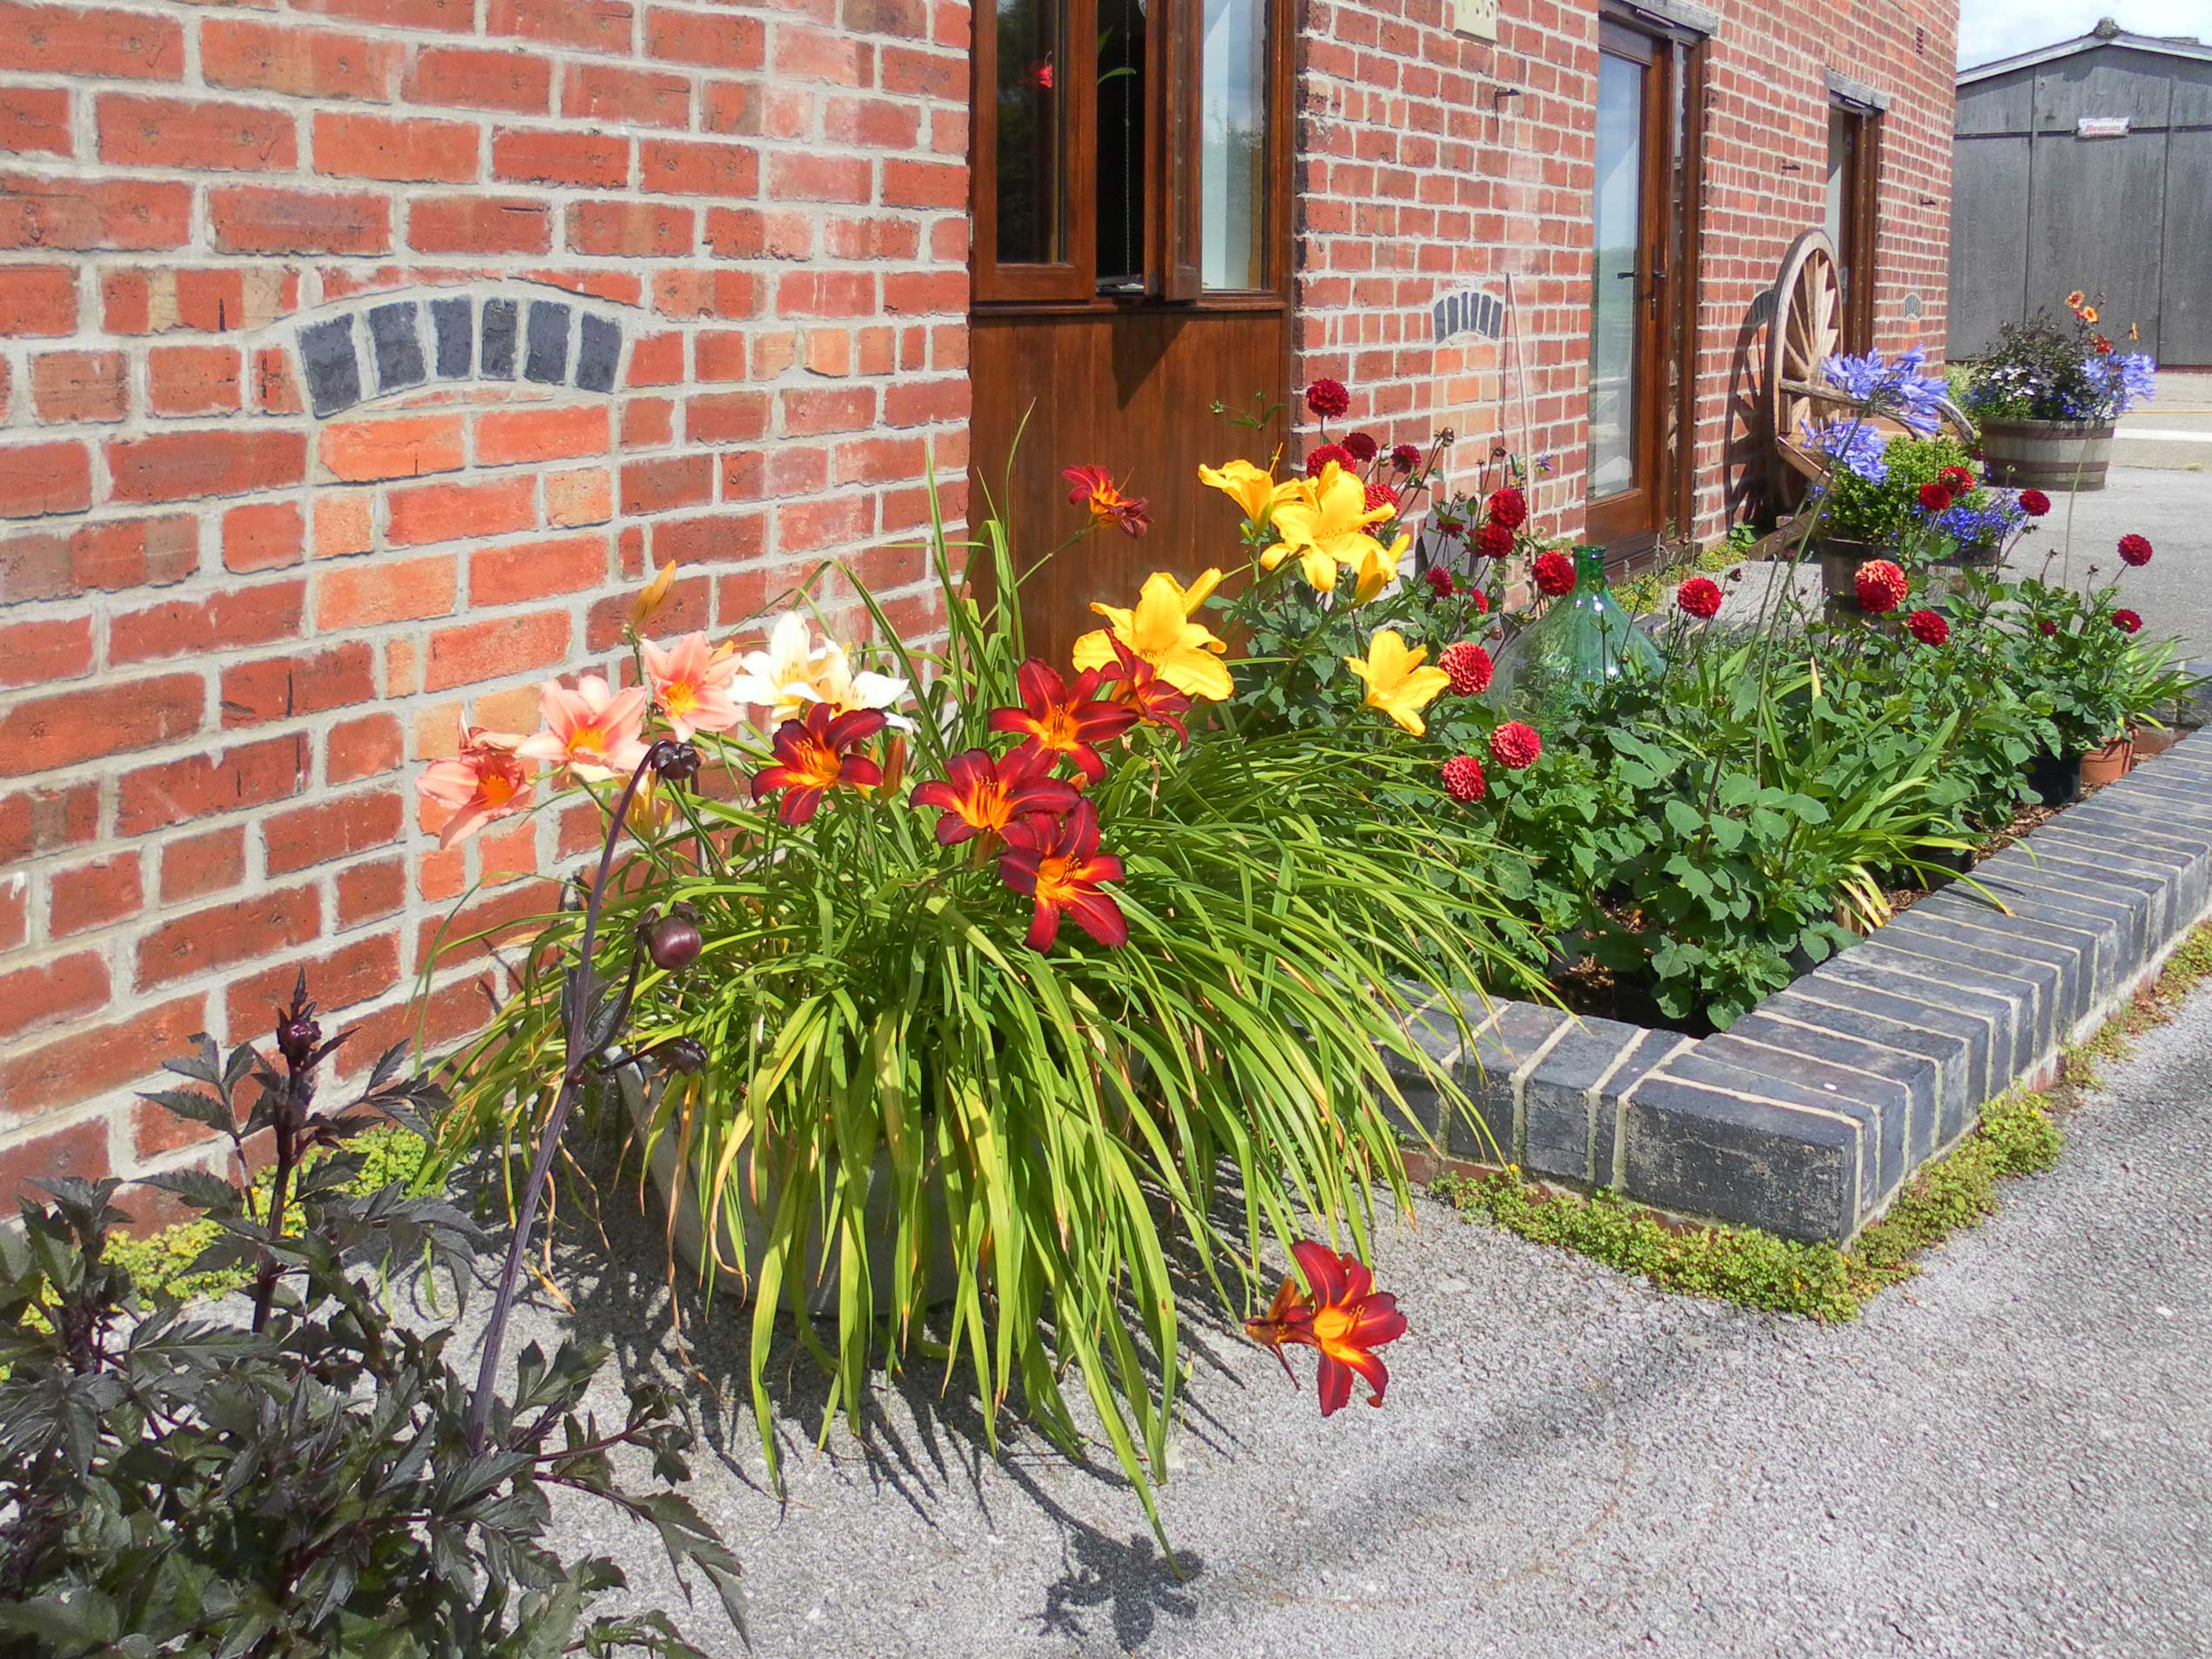 self catering holiday accommodation in North Nottinghamshire